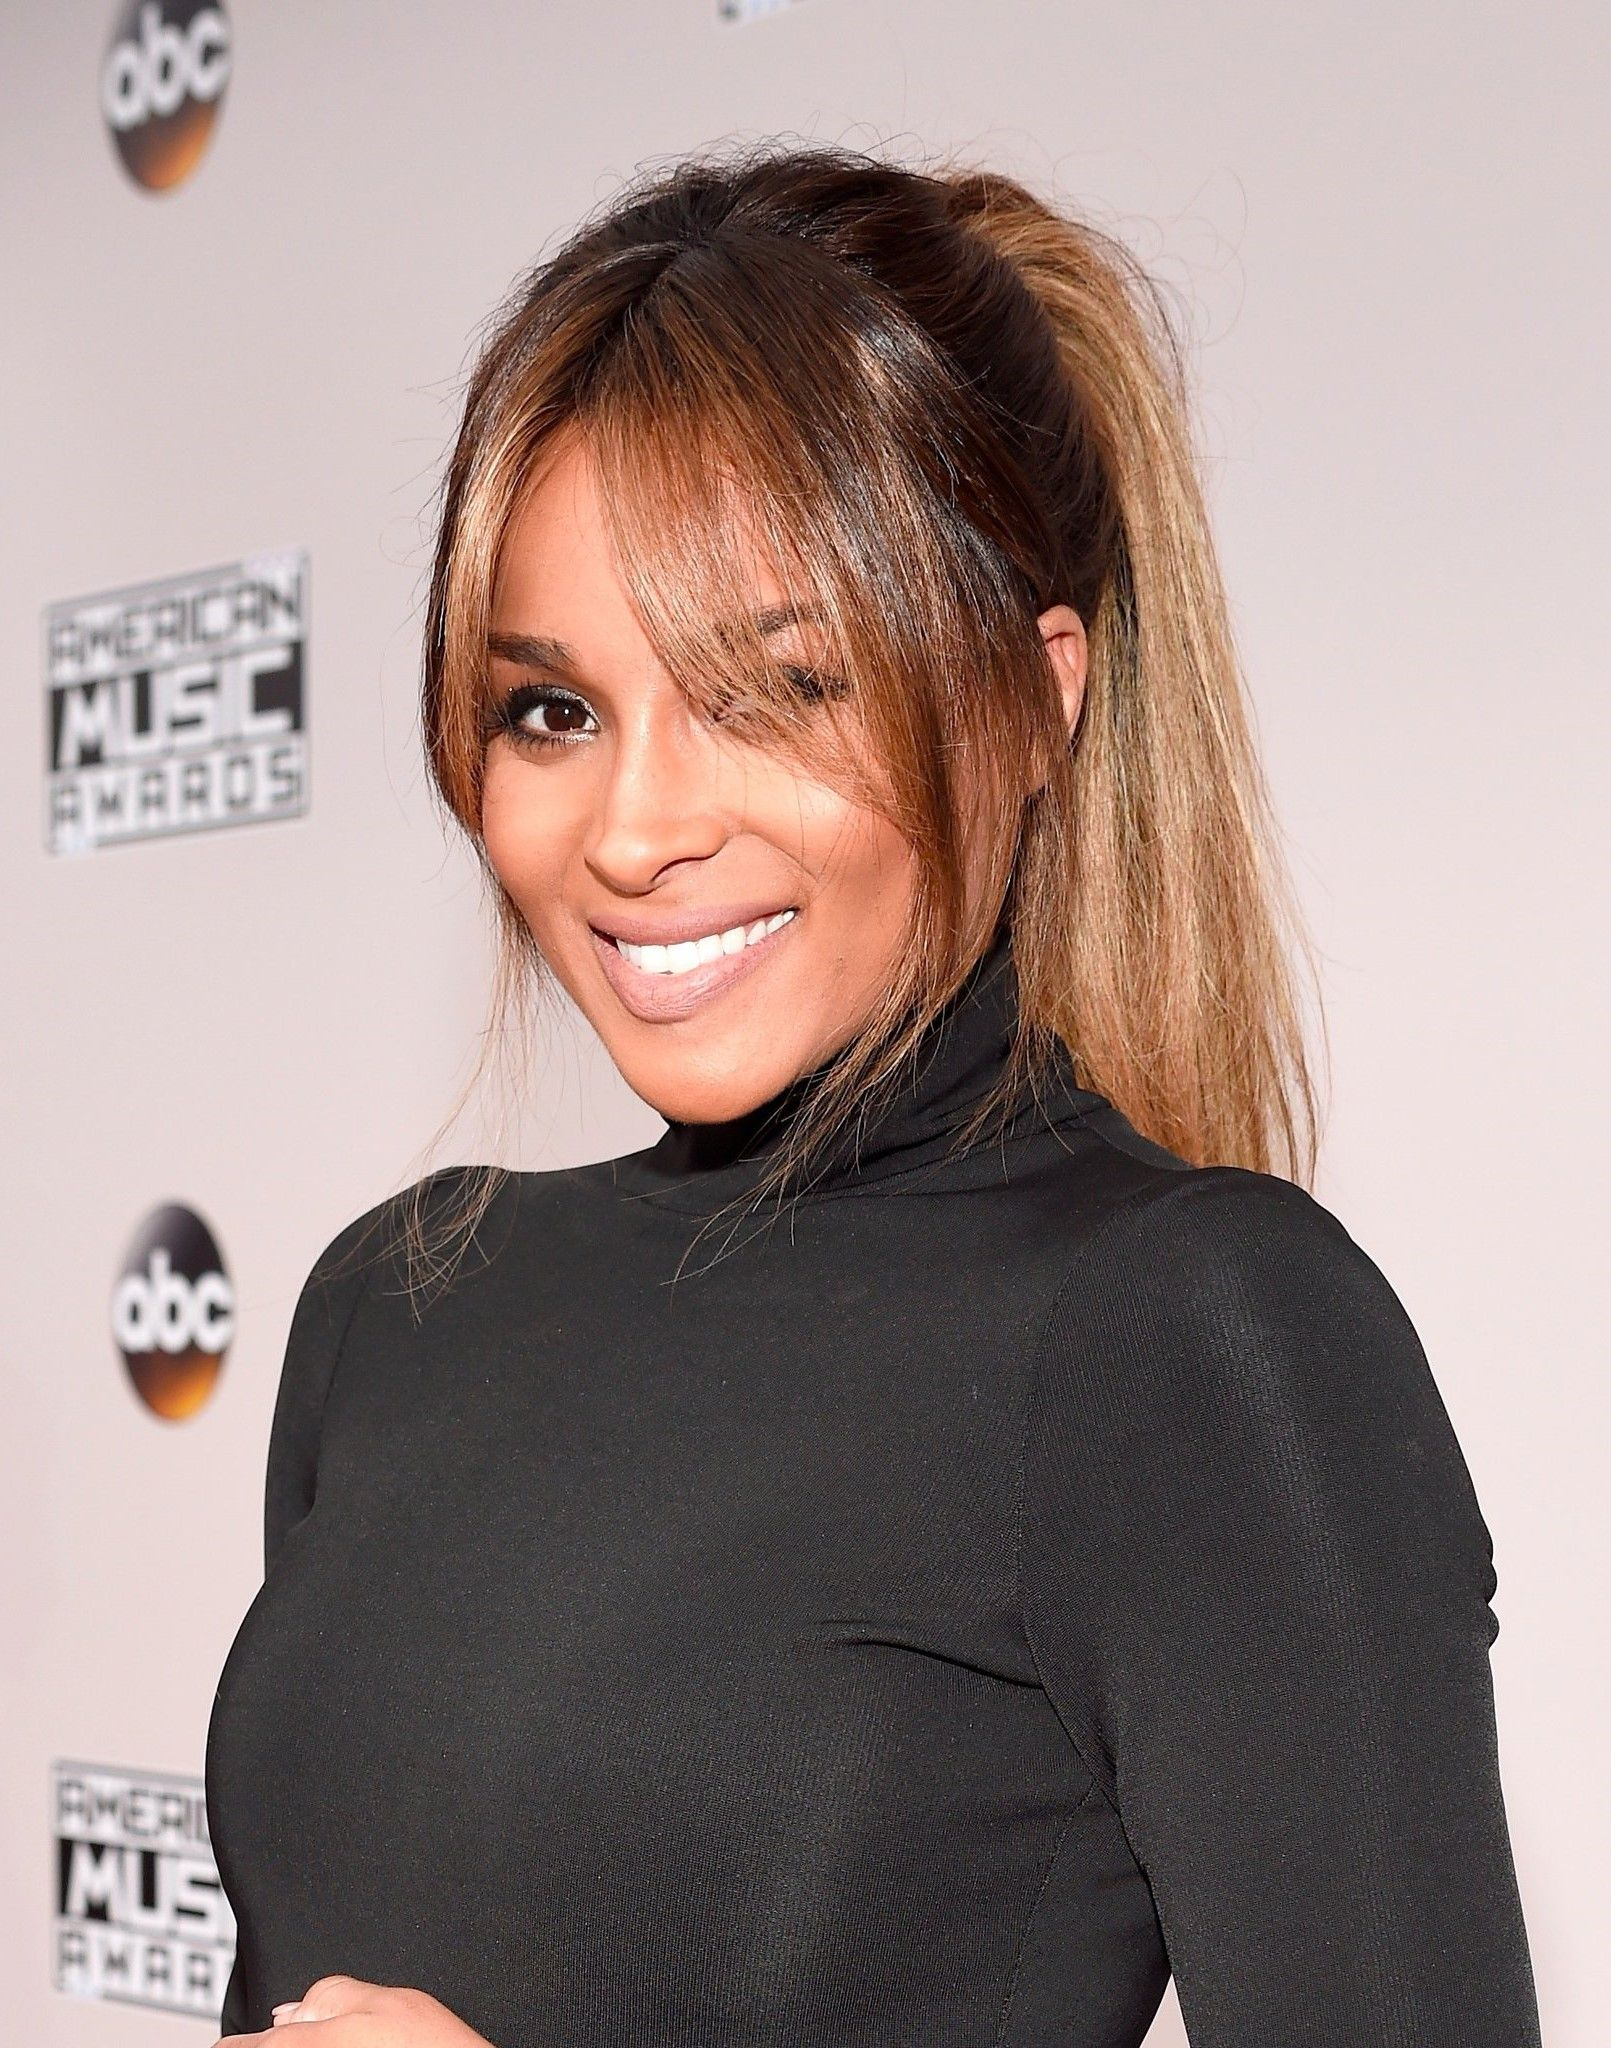 Ciara Hairstyles Entrancing Top 5 Ciara Hairstyles To Try Today — Famous Beautiful Black Women